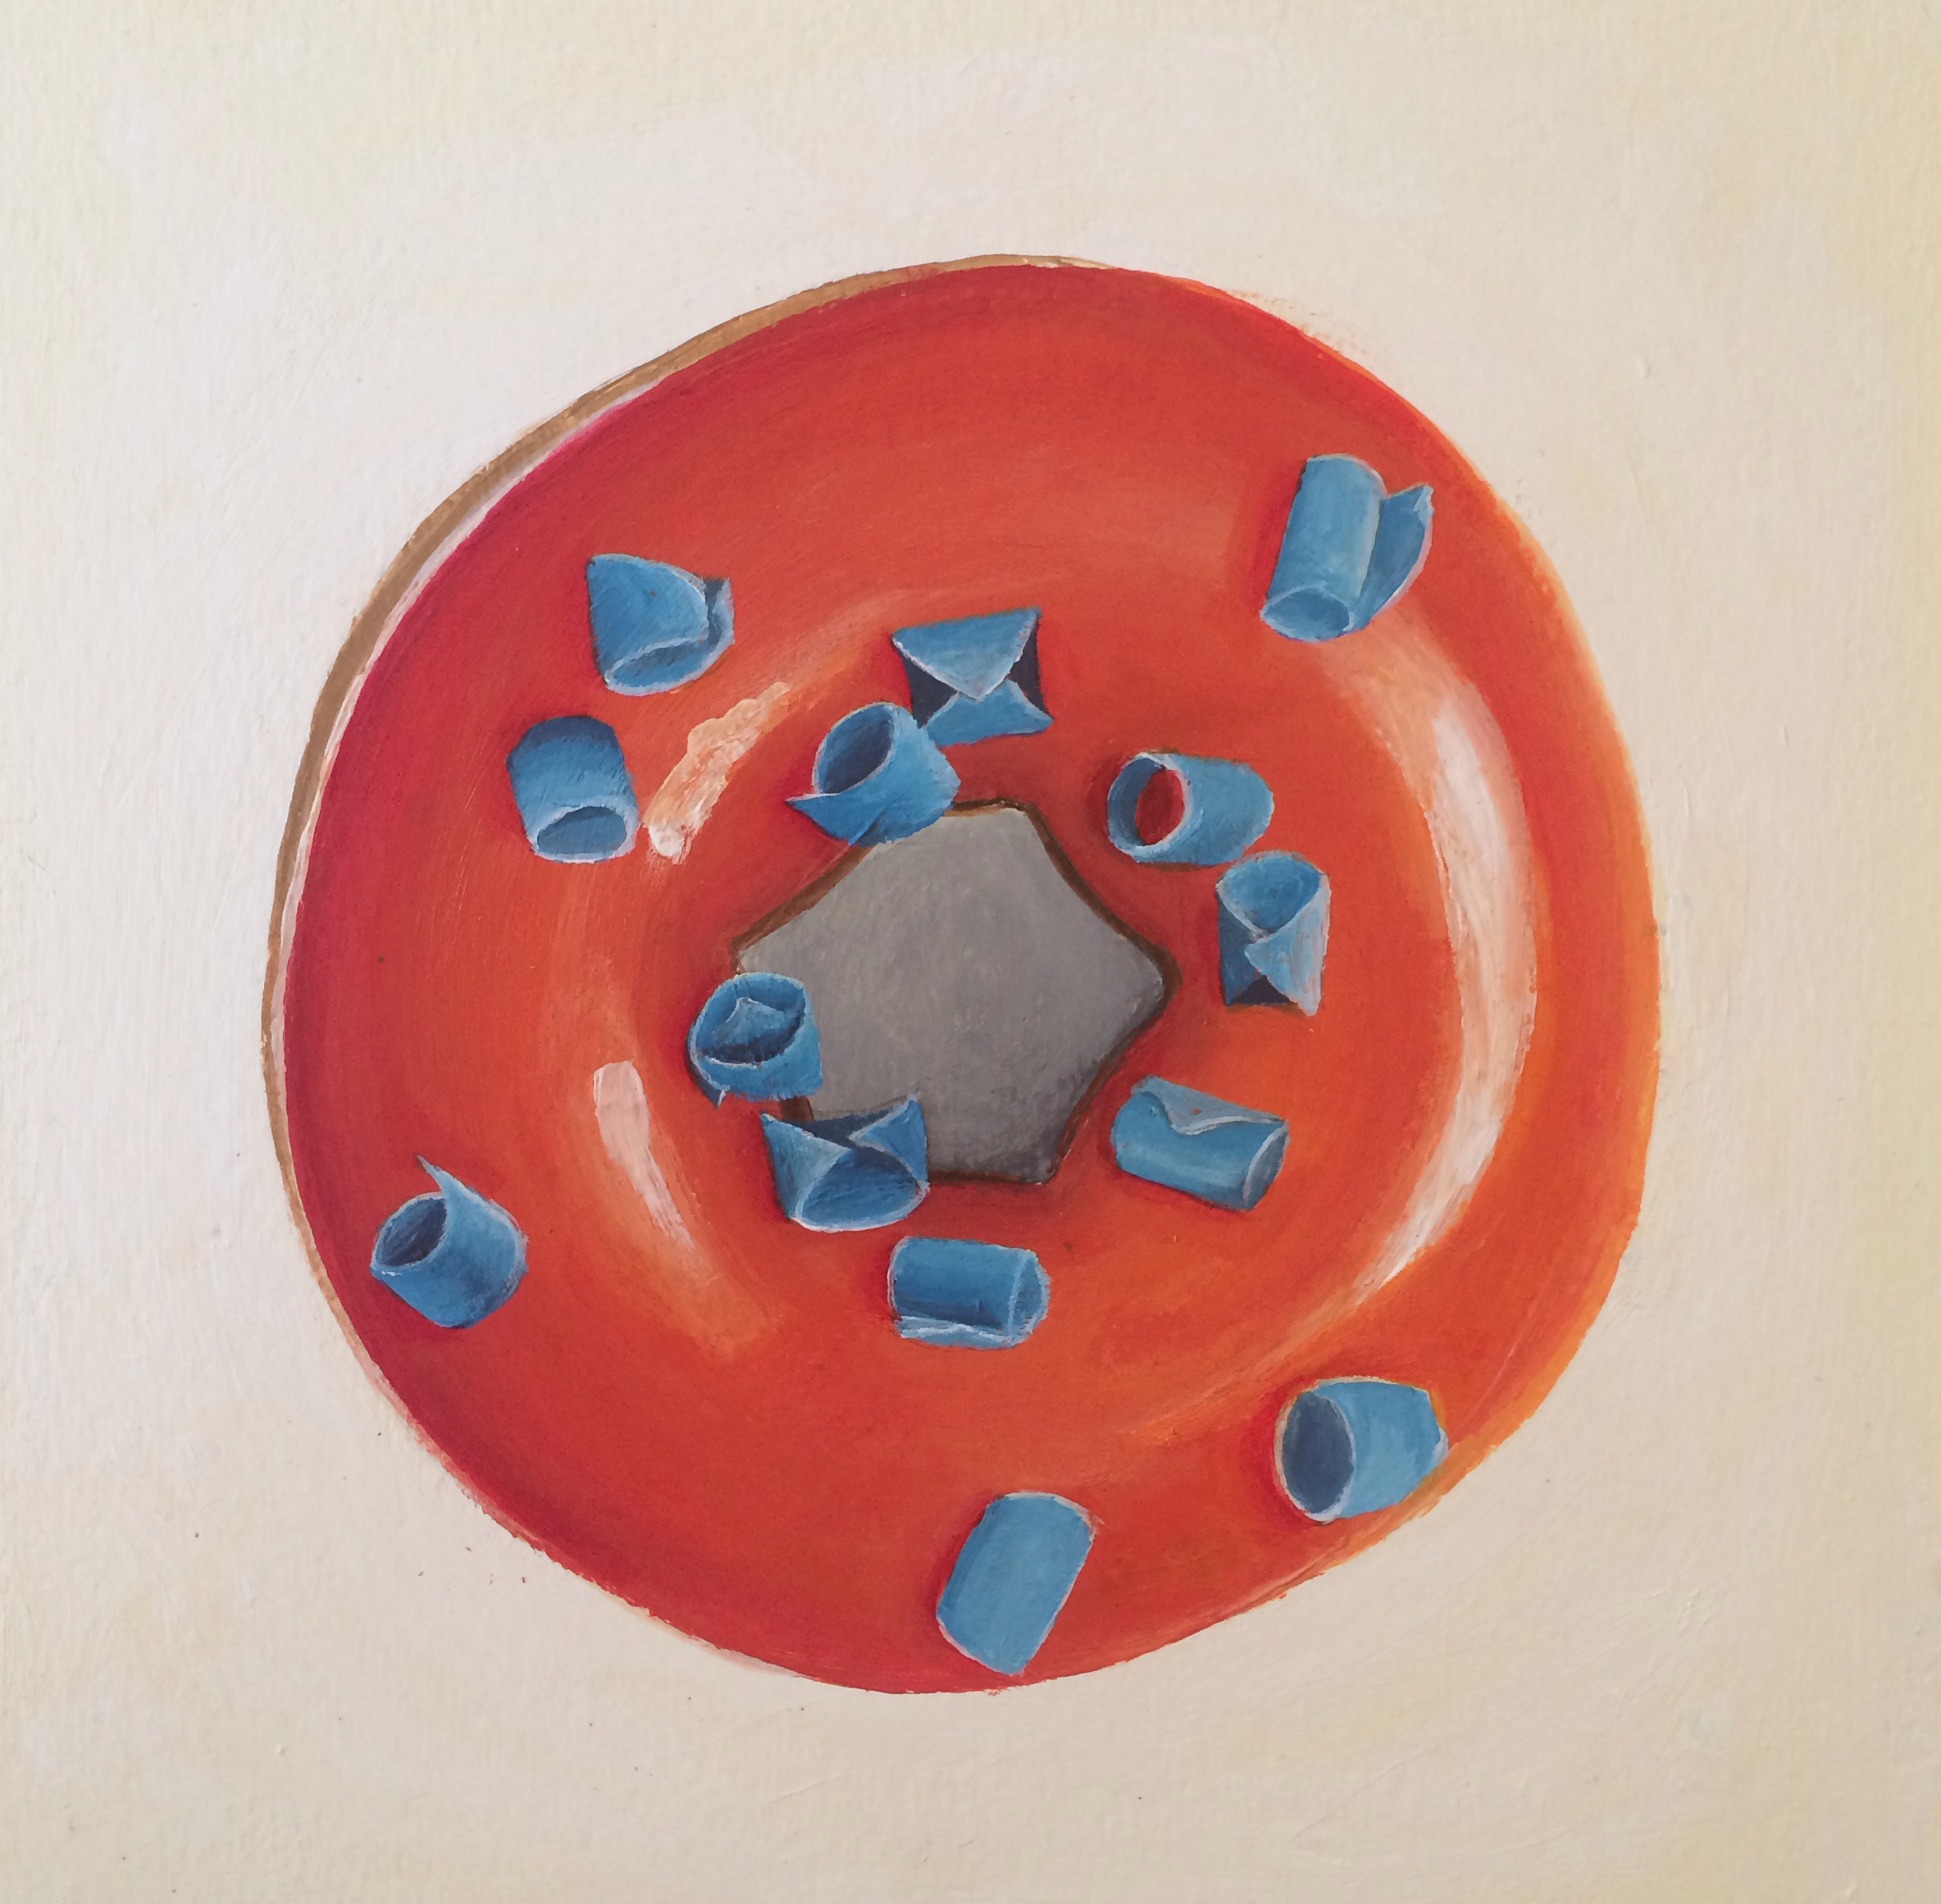 Painting of a donut photo